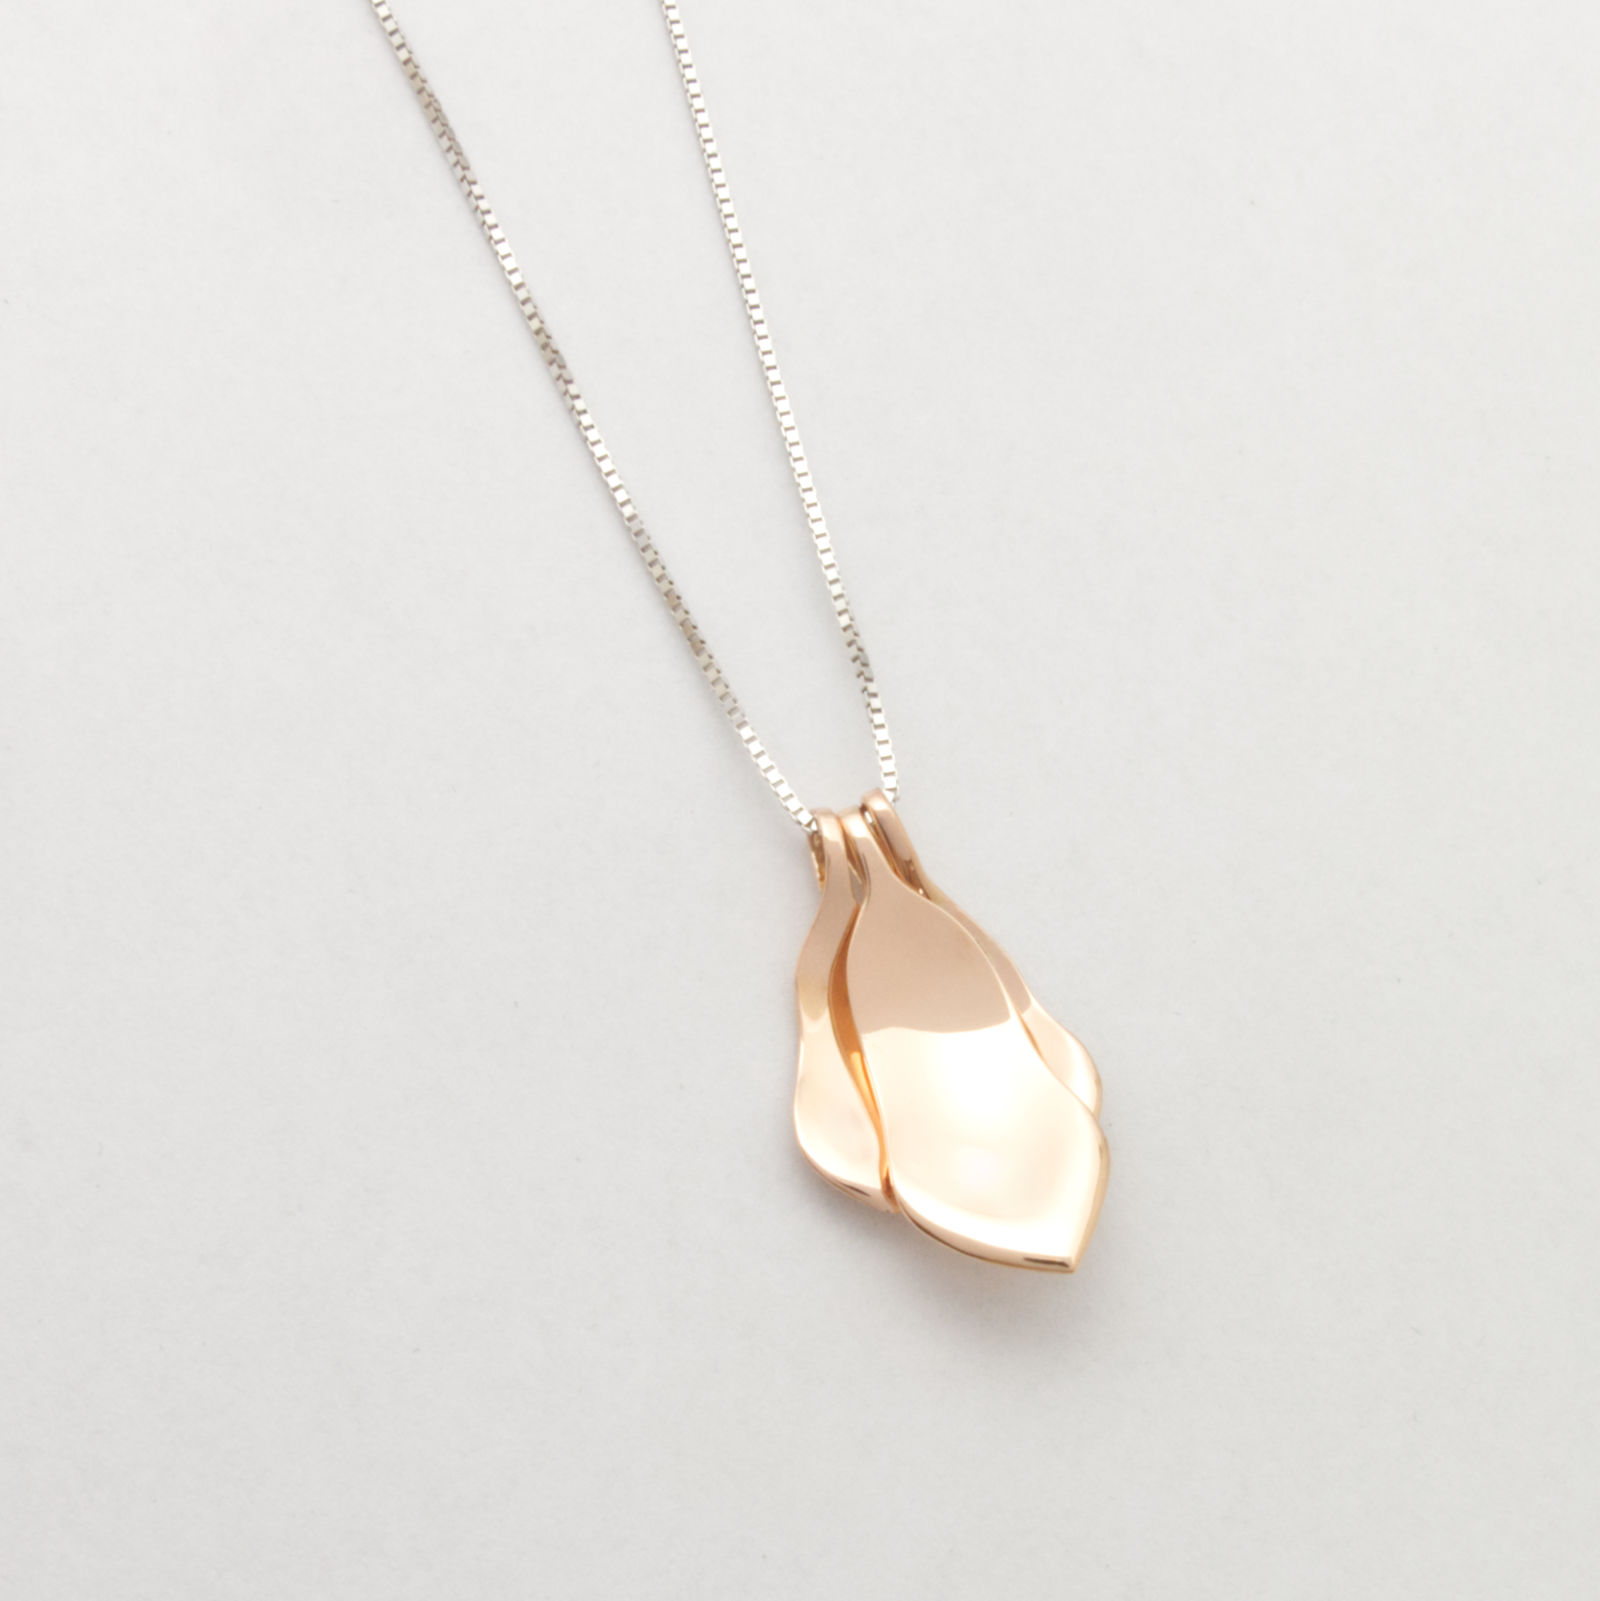 Handcrafted sustainable jewellery with memory of a magnolia tree..